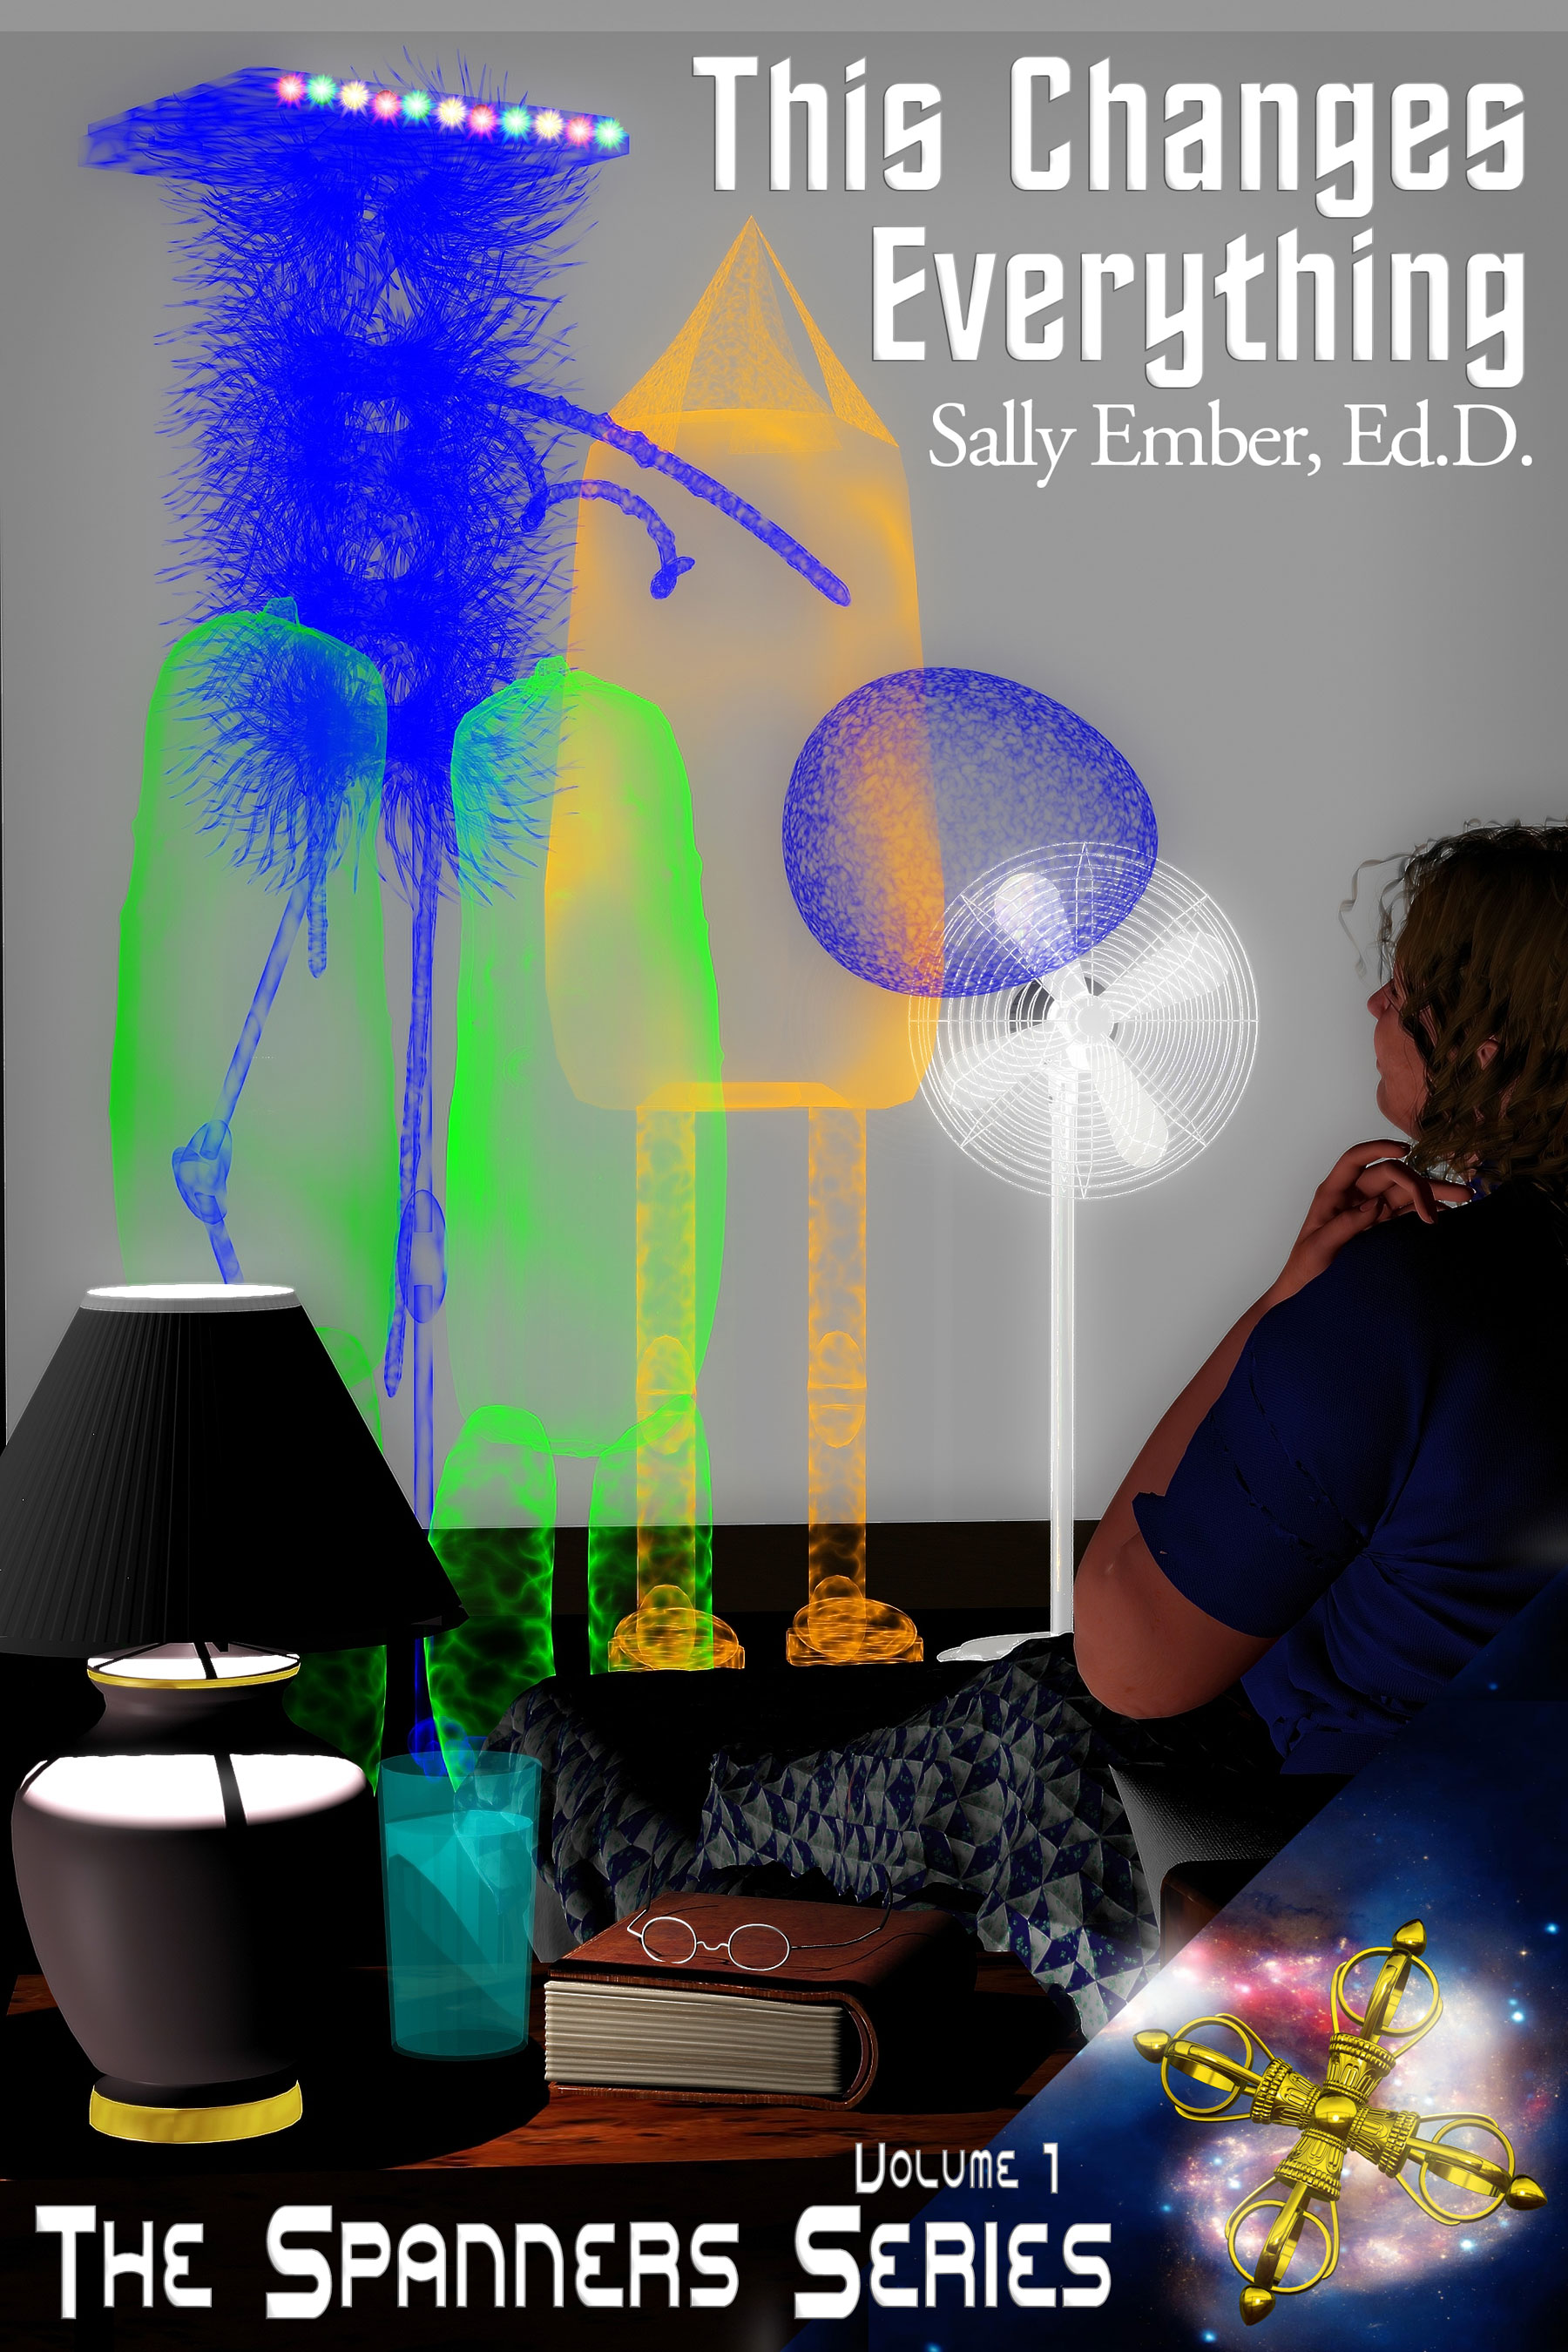 Psi sally ember edd this changes everything web and ebooks fandeluxe Images